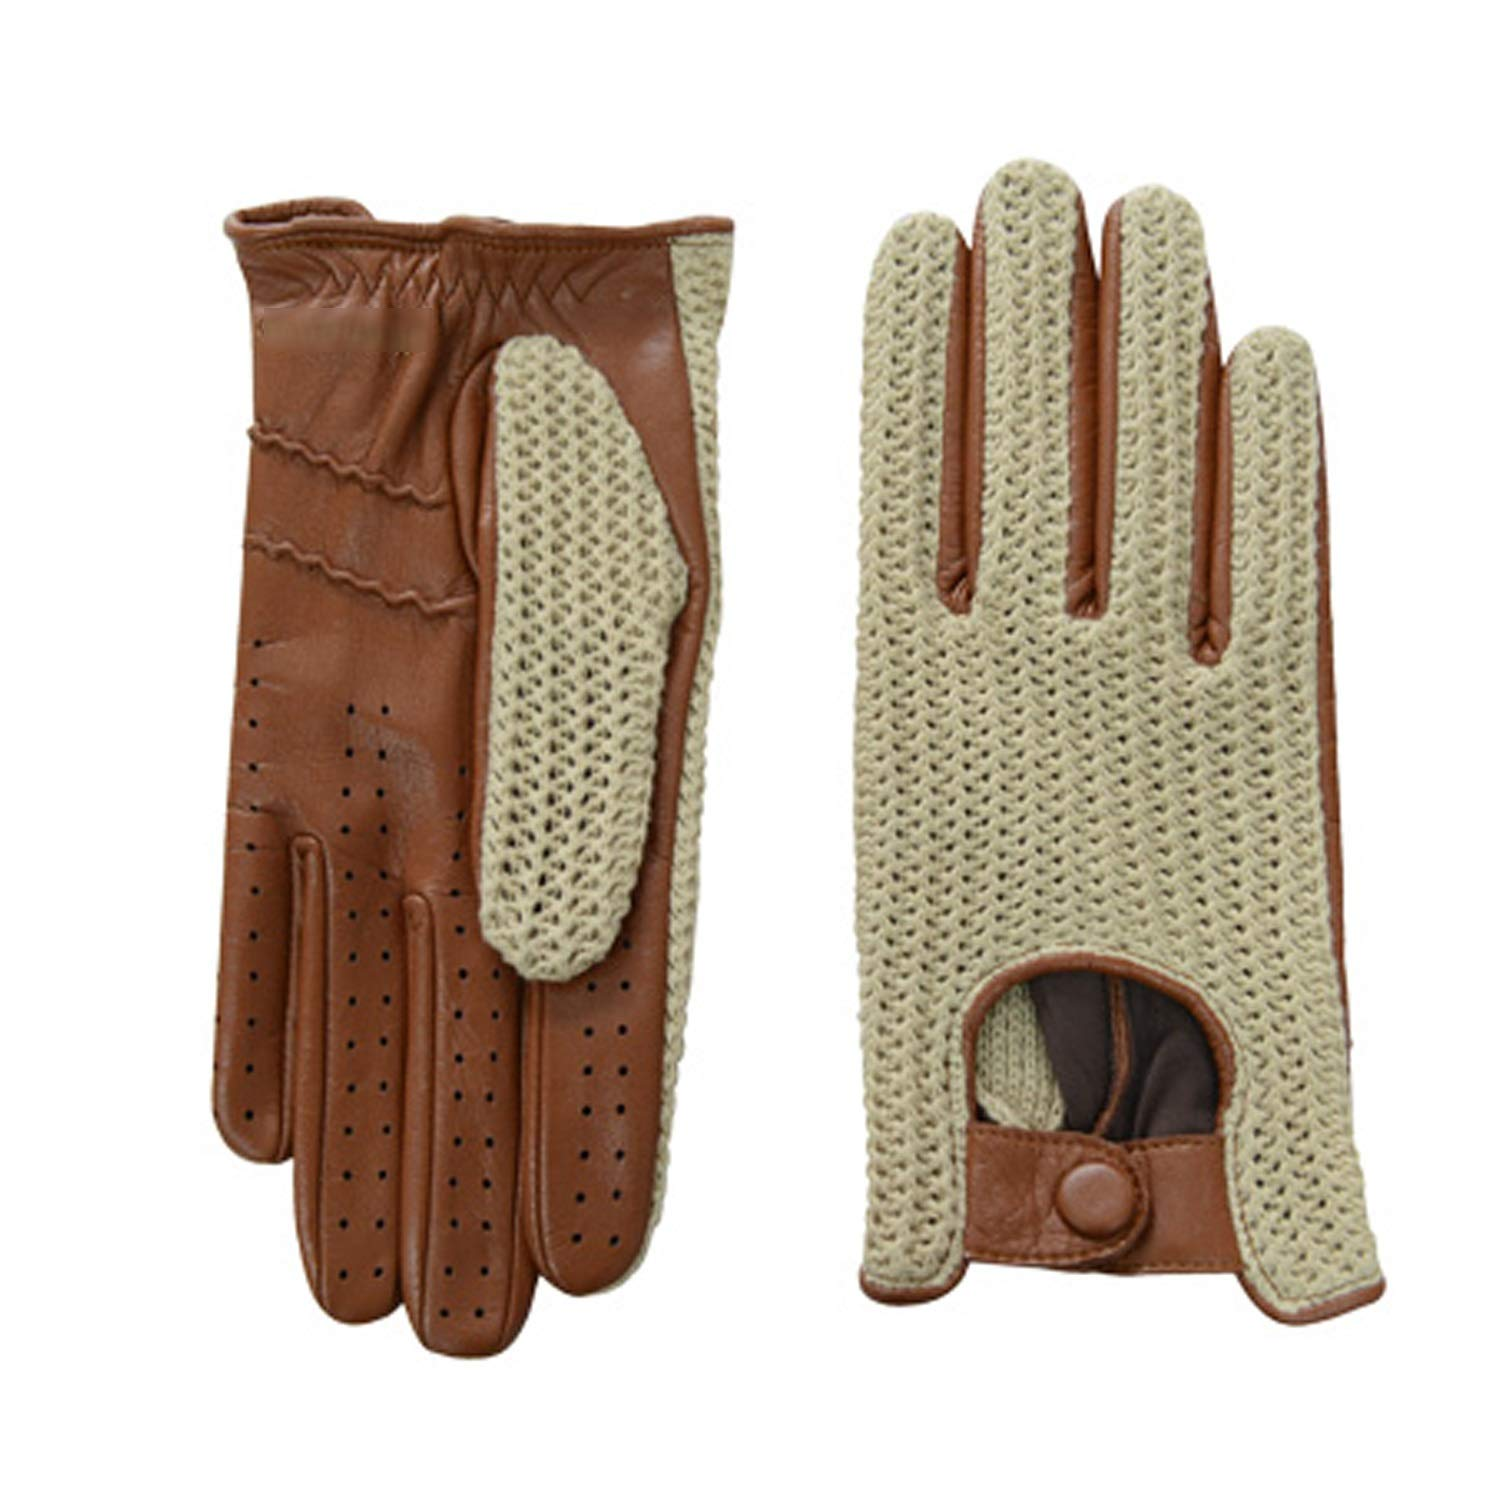 Mens Touchscreen Weaving Driving Motorcycle Leather Gloves,1 pairs Various style gloves Color : Black, Size : S